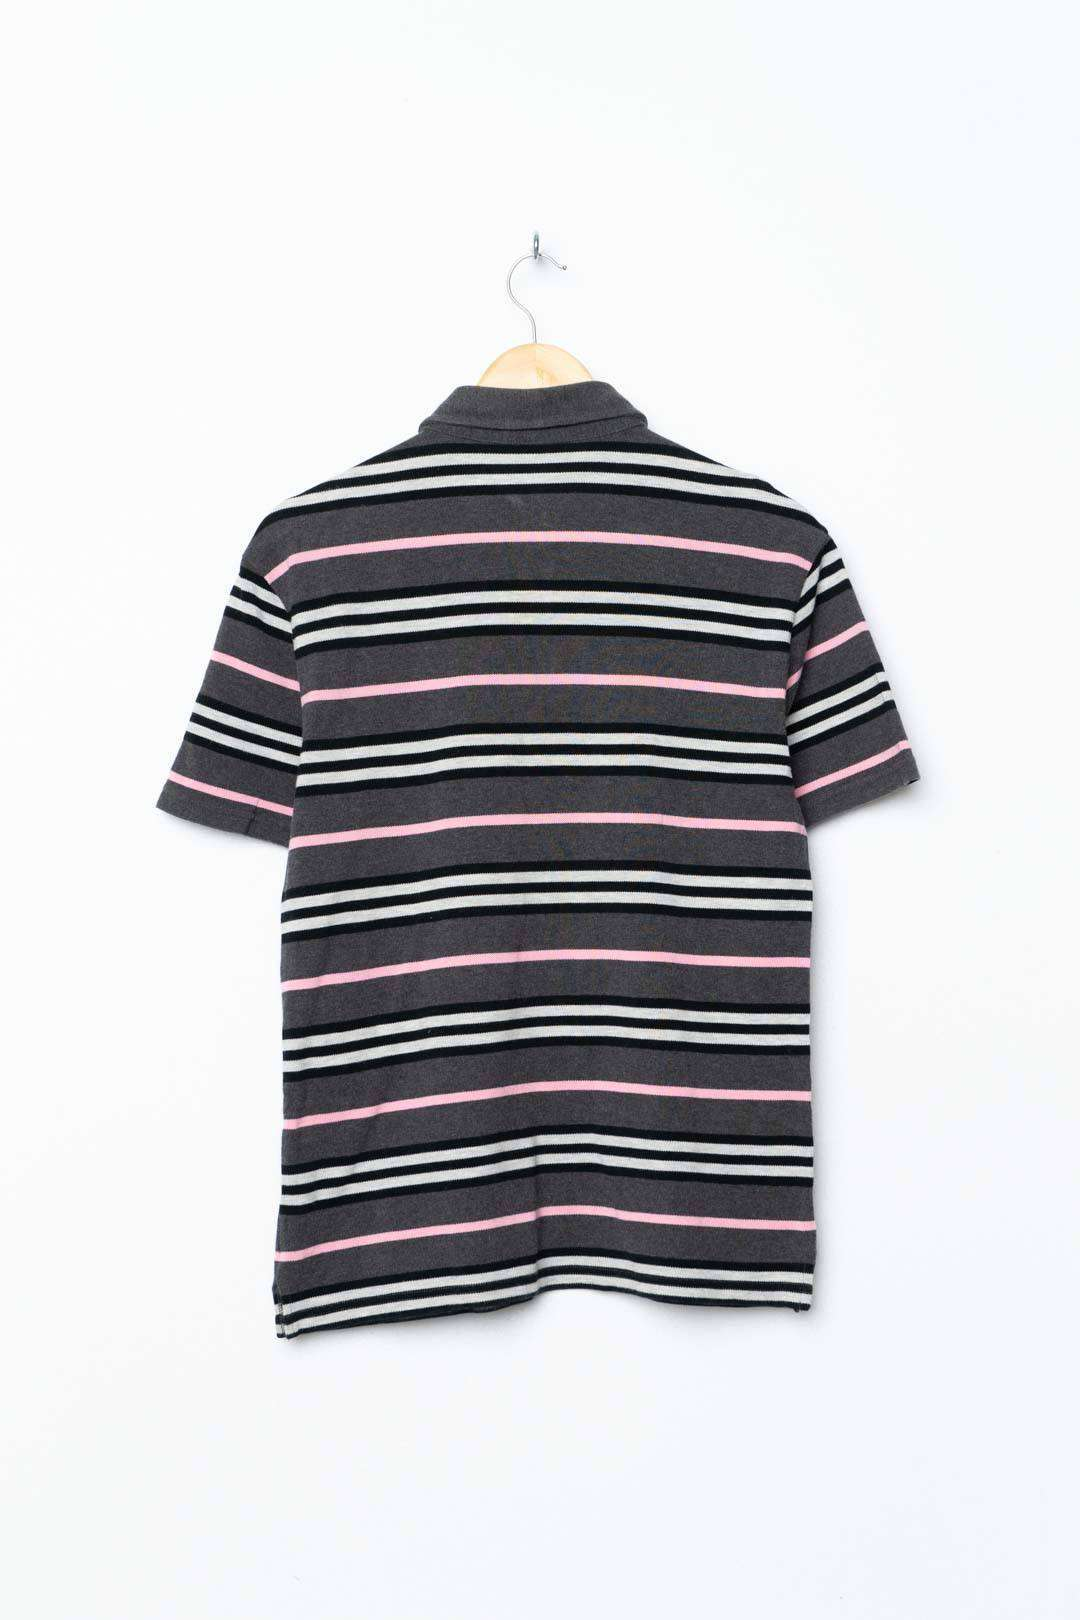 Grey Pink Burberry Polo Shirt XS - VinoKilo.com